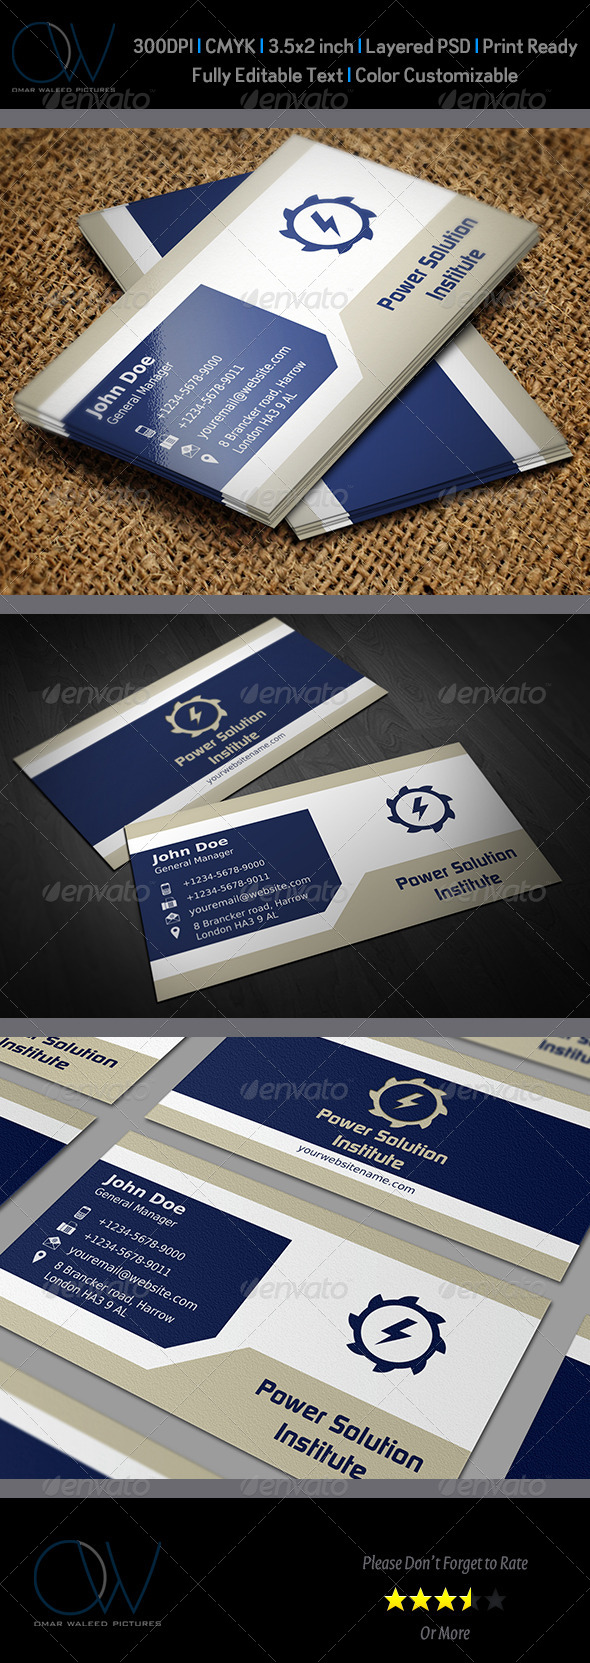 Corporate Business Card Template Vol.39 - Corporate Business Cards